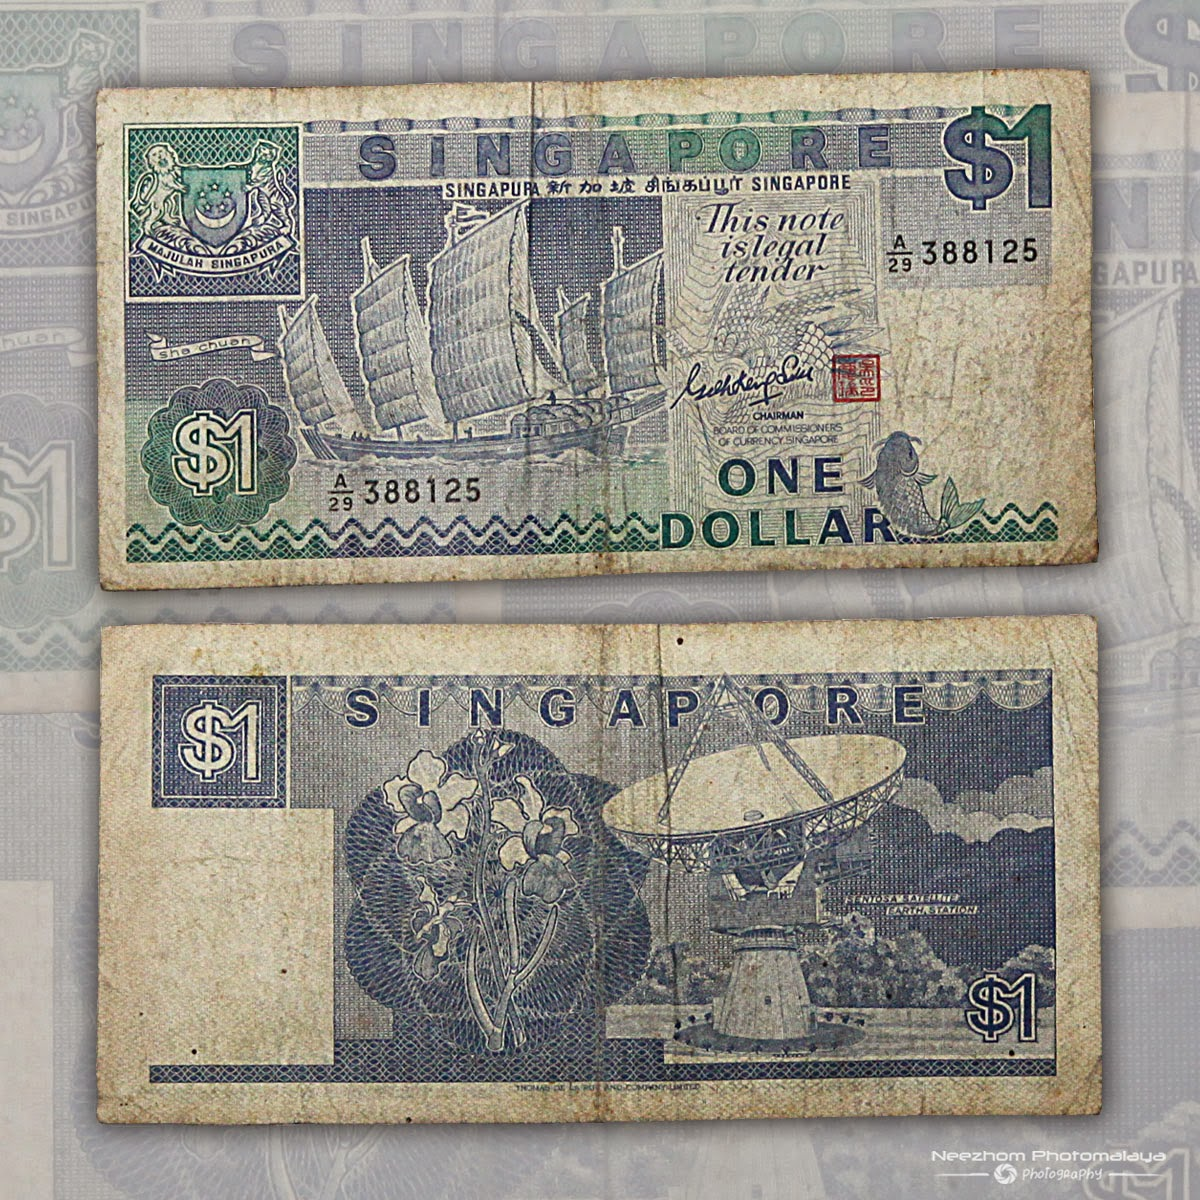 One Dollar Singapore Ship Series